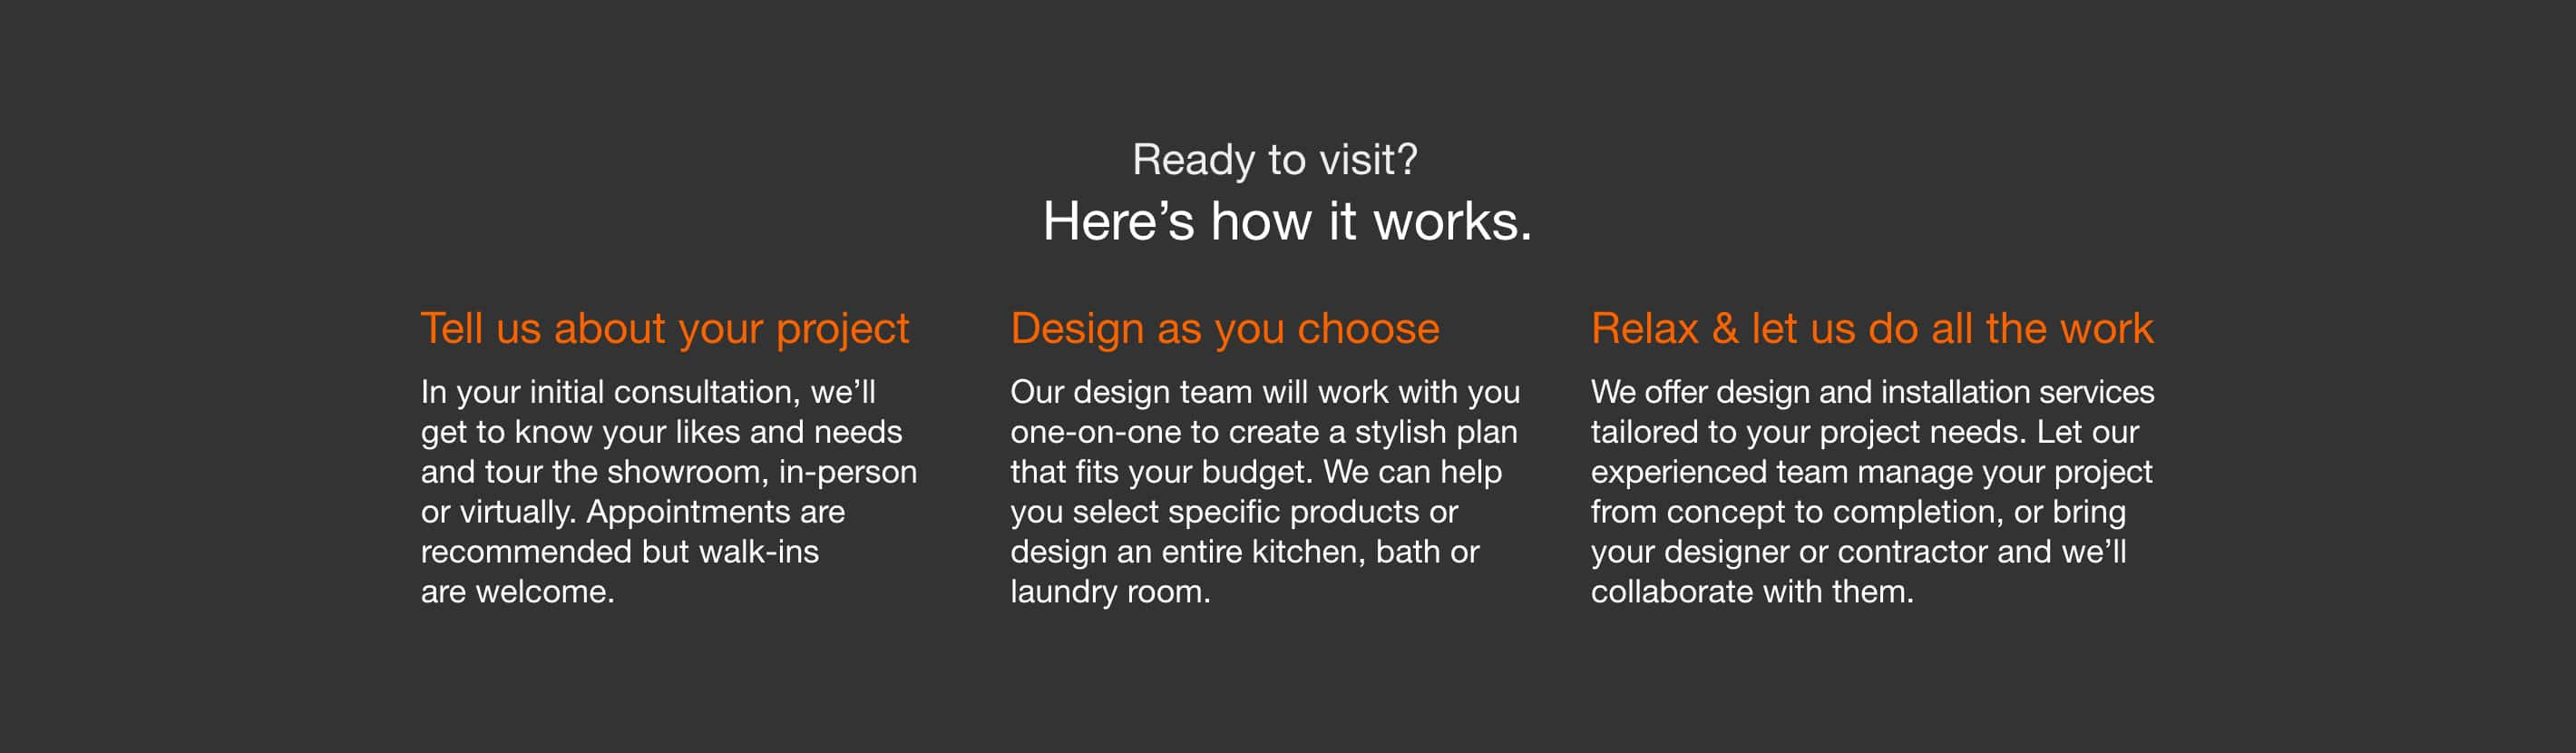 Ready to visit?  Here's how it works.